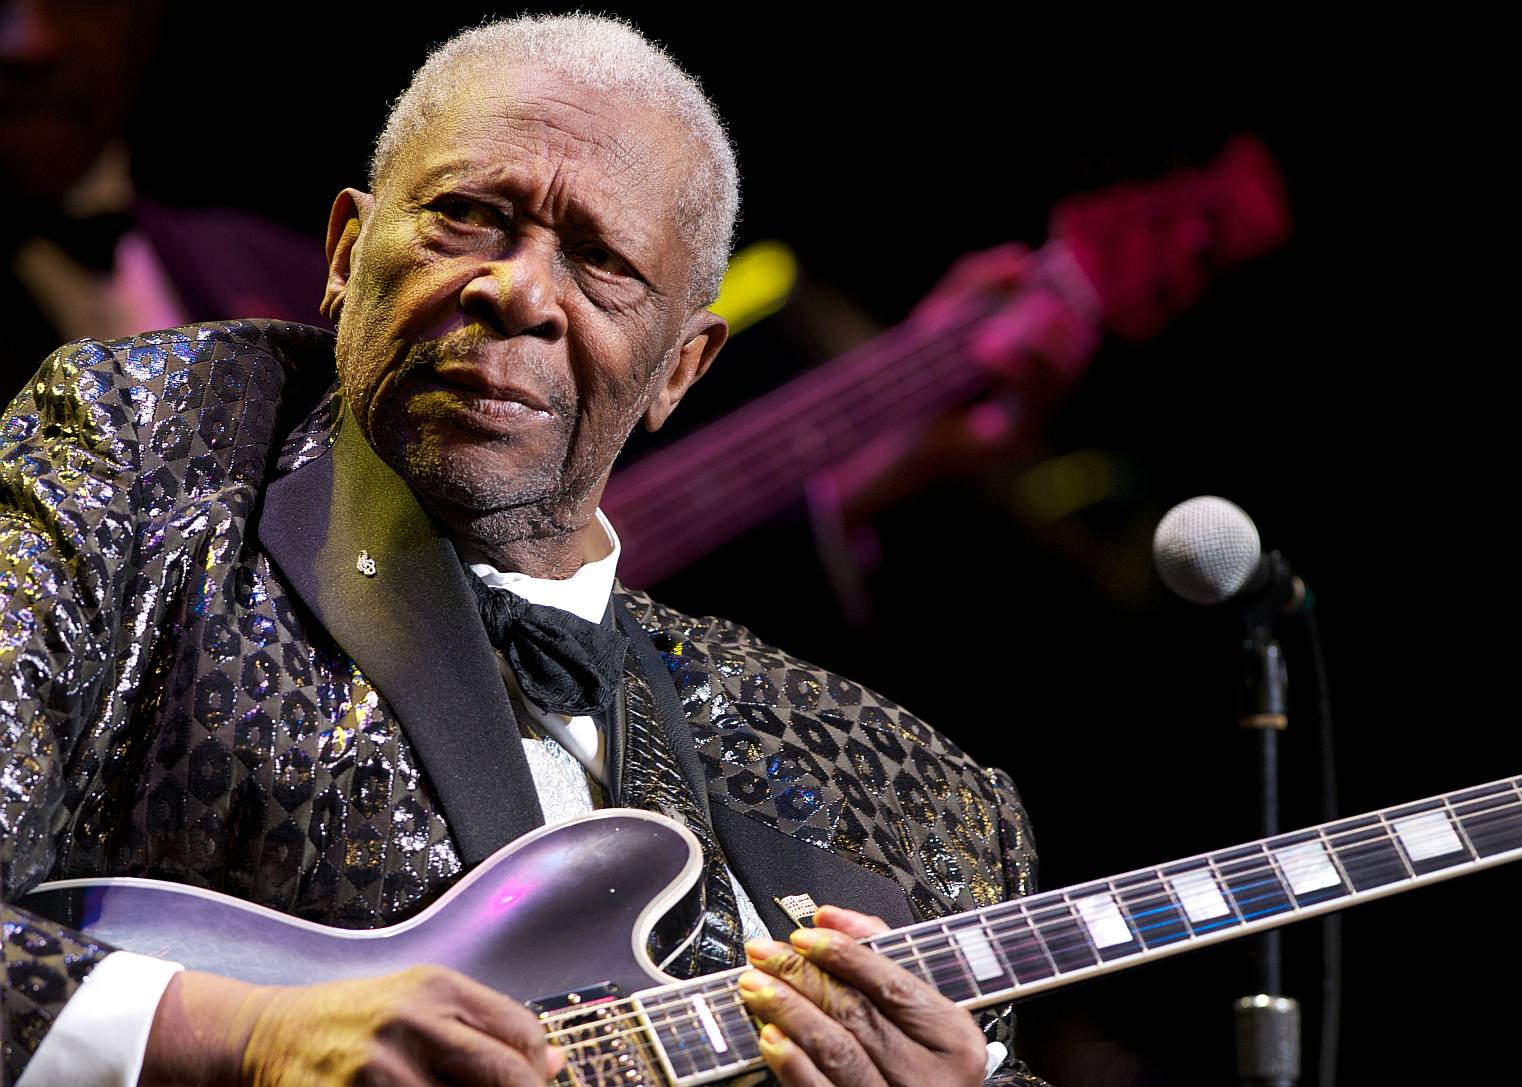 Legend BB King died - People News - Kitoler.com